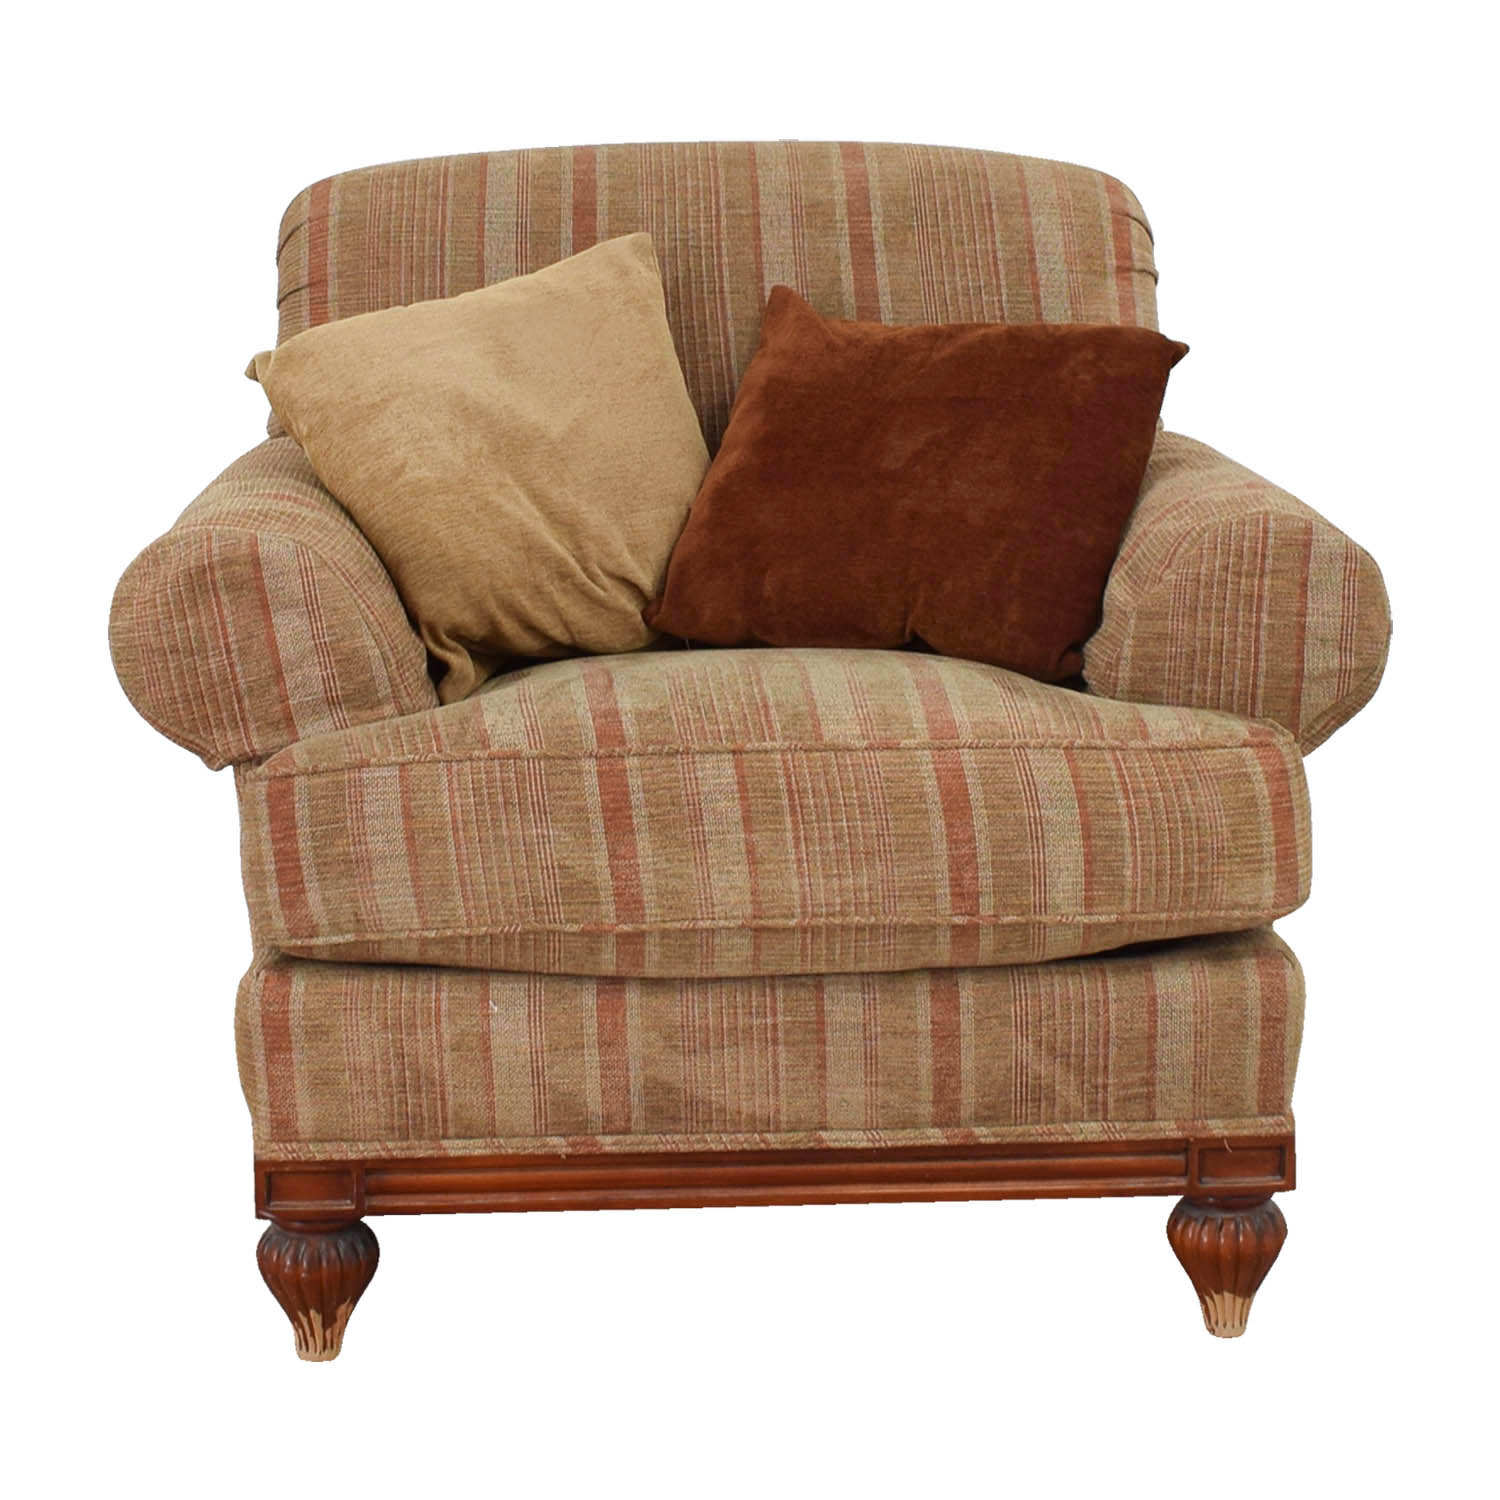 Councill Councill Tan and Paprika Comfort Chair with Throw Pillows